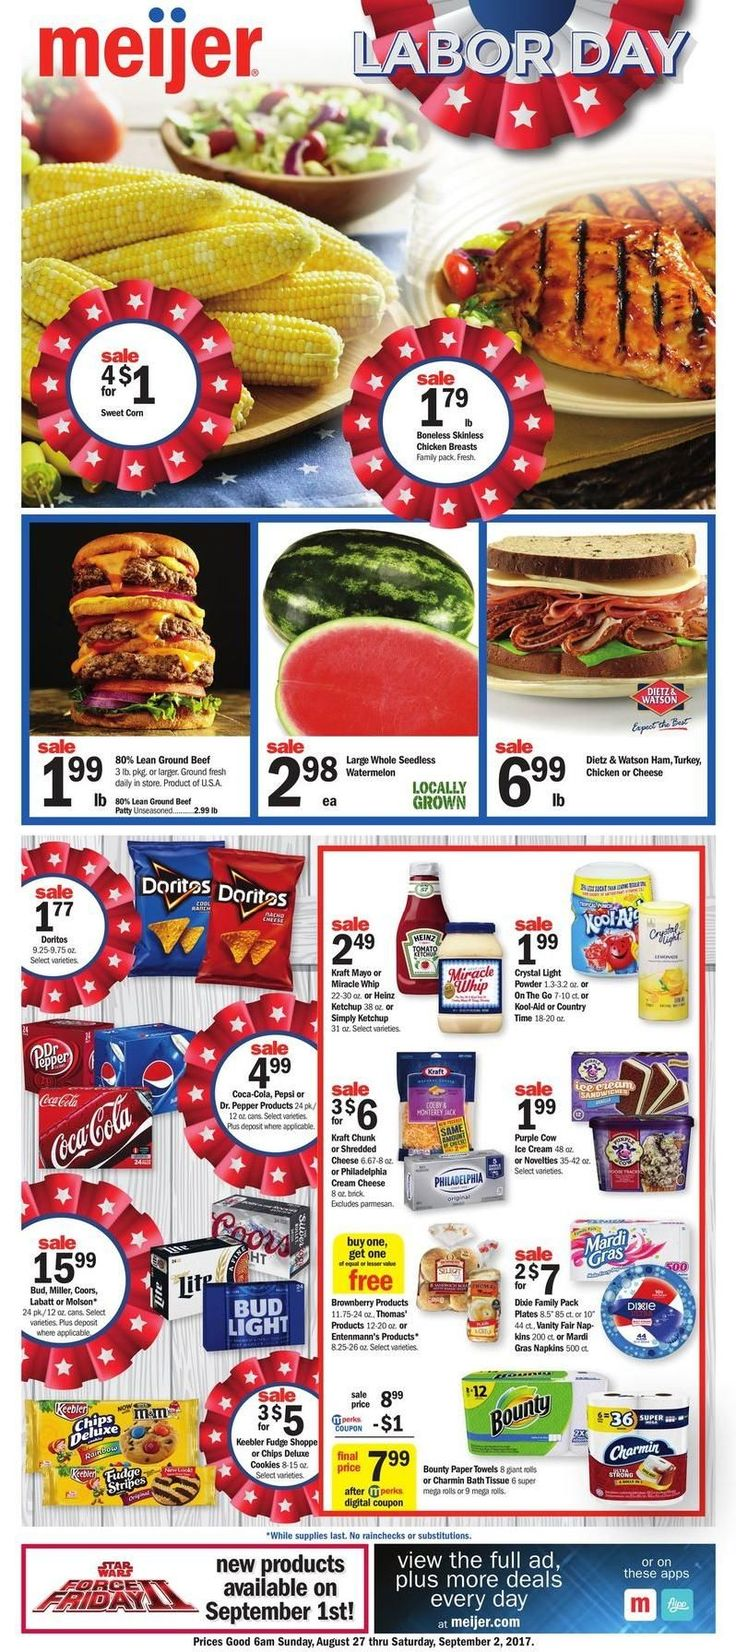 Meijer Weekly Ad August 27 - September 2 #grocery savings #Meijer circular. Labor day #laborday